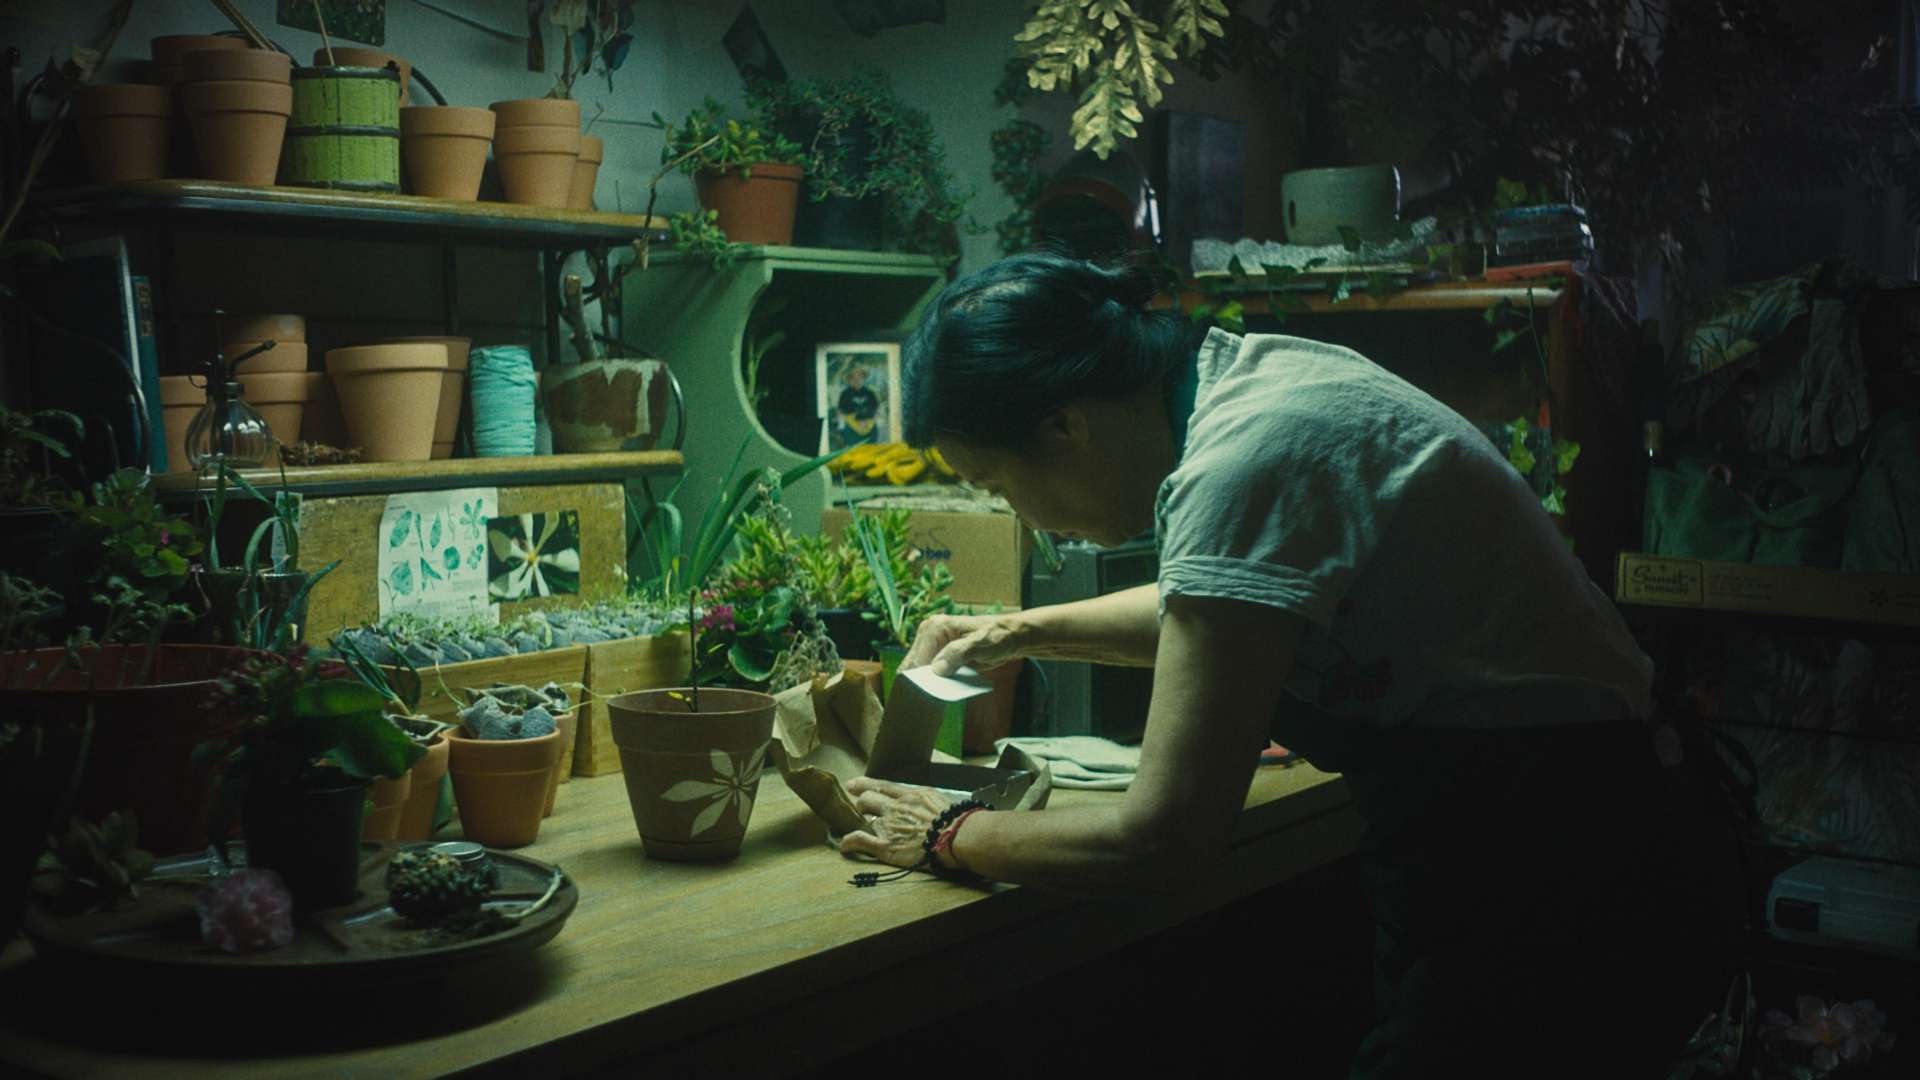 """The Sentient.Omnibus project will screen """"In Full Bloom"""" in June.  The film follows a Vietnamese immigrant mourning the loss of her partner. (Courtesy Maegan Houang)"""